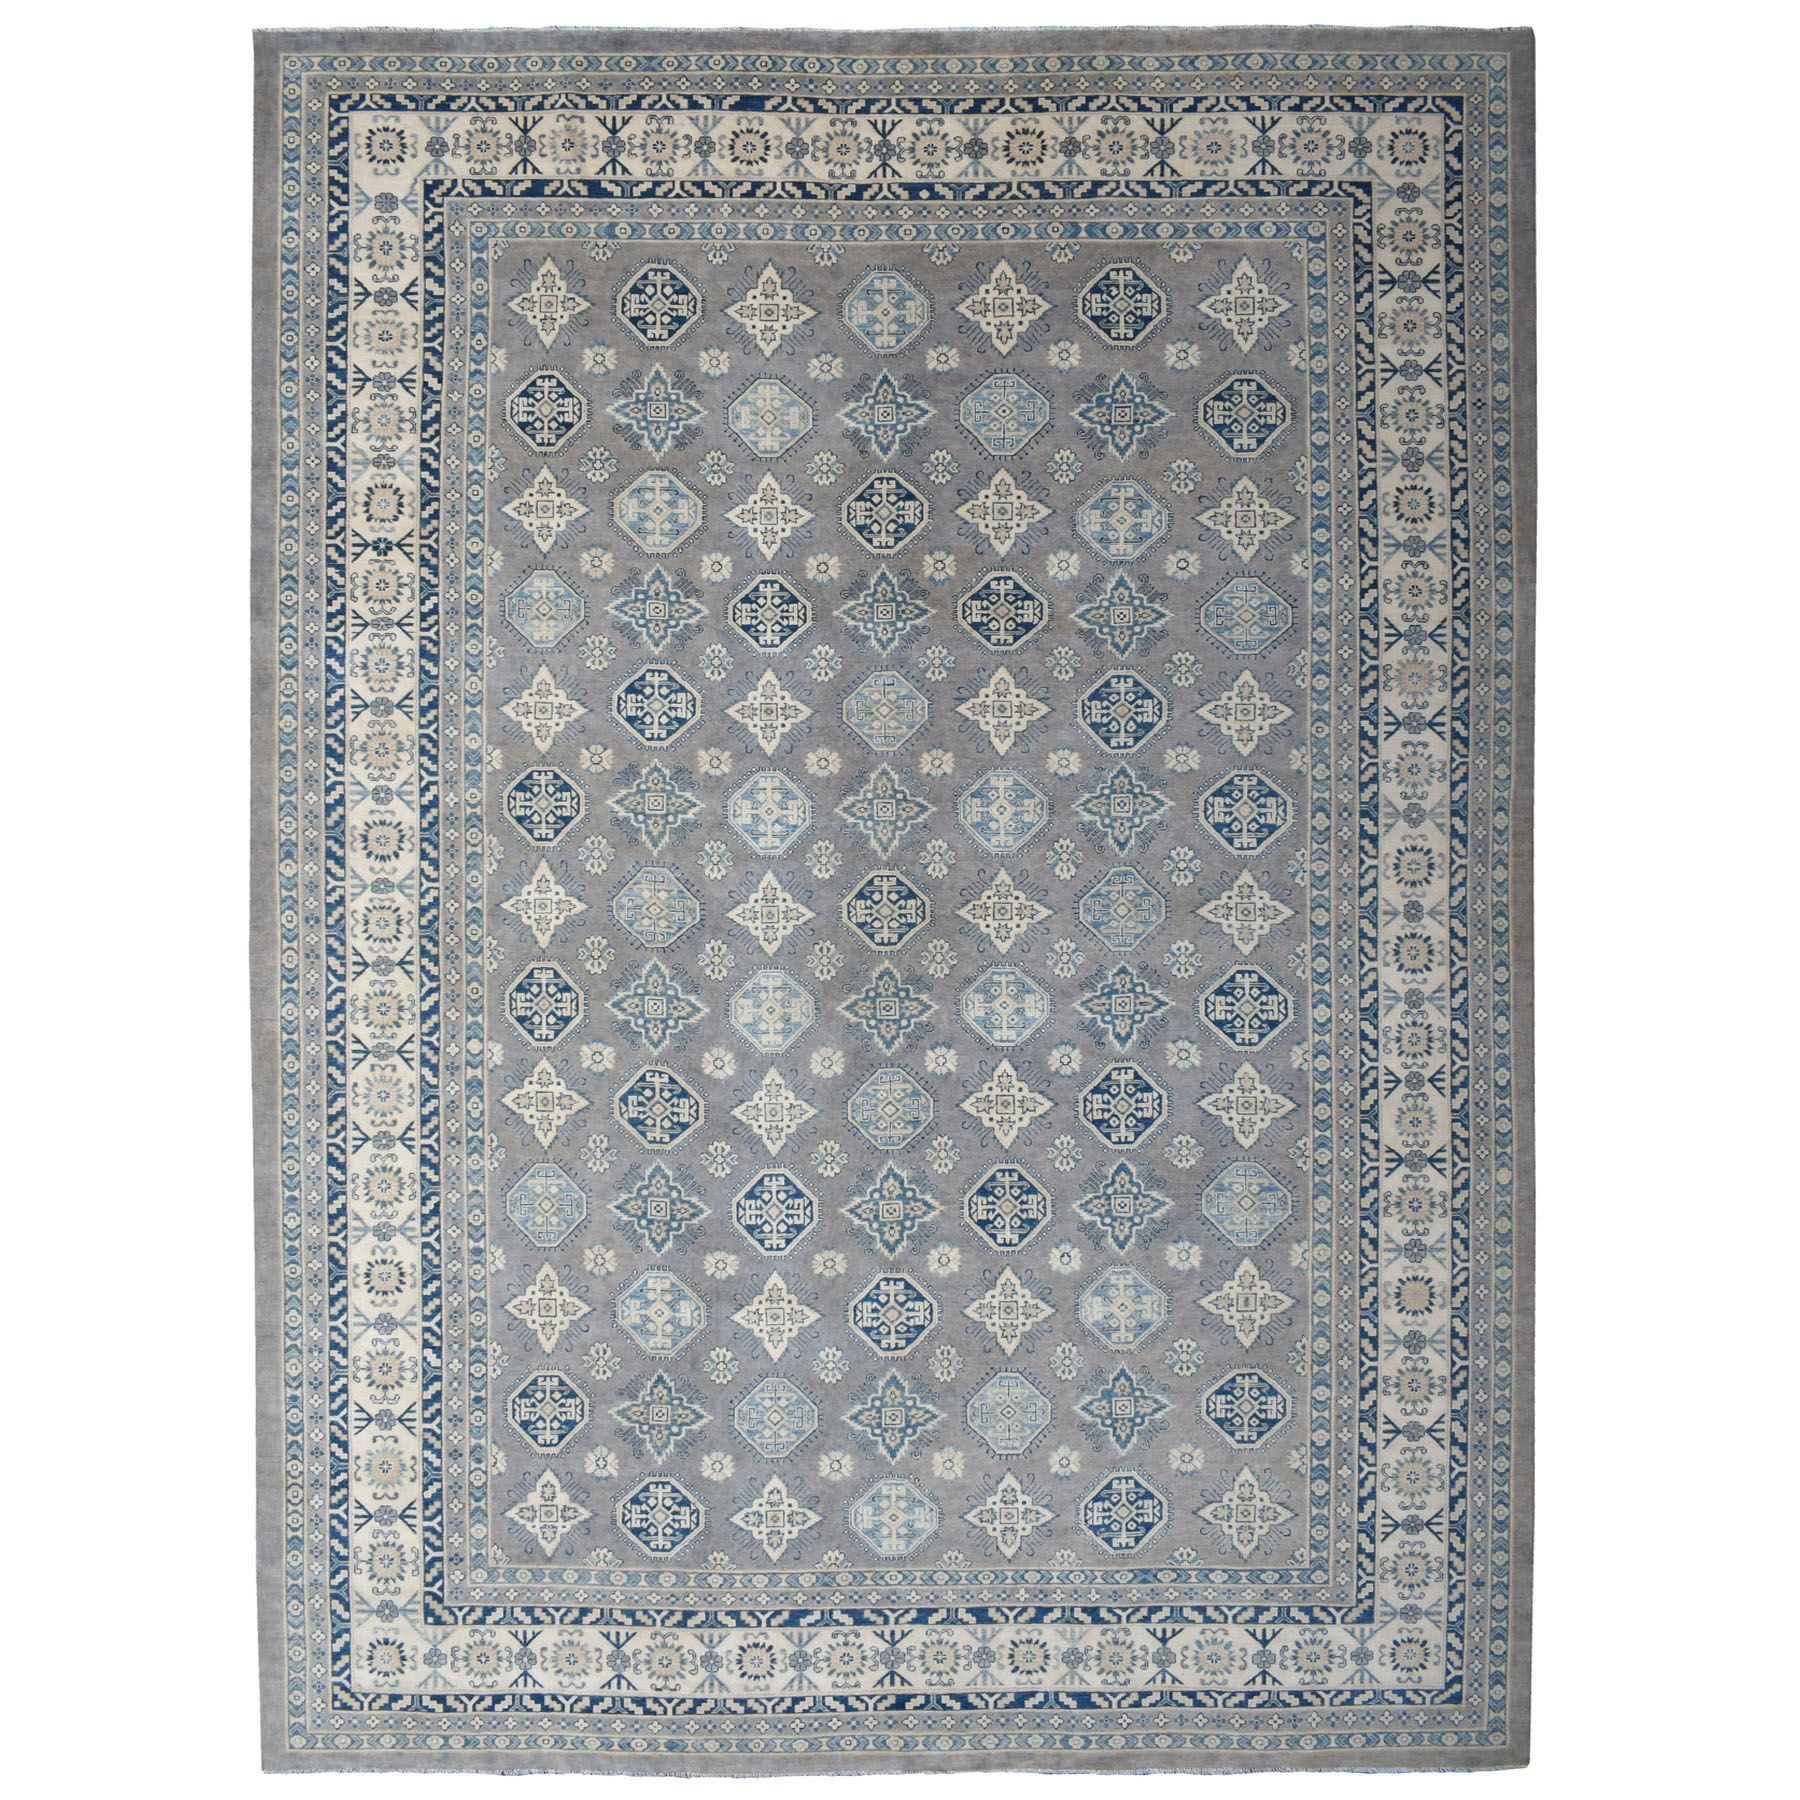 "12'1""x17'1"" Oversized Gray Vintage Look Kazak All Over Design Hand Knotted Natural Wool Rug"